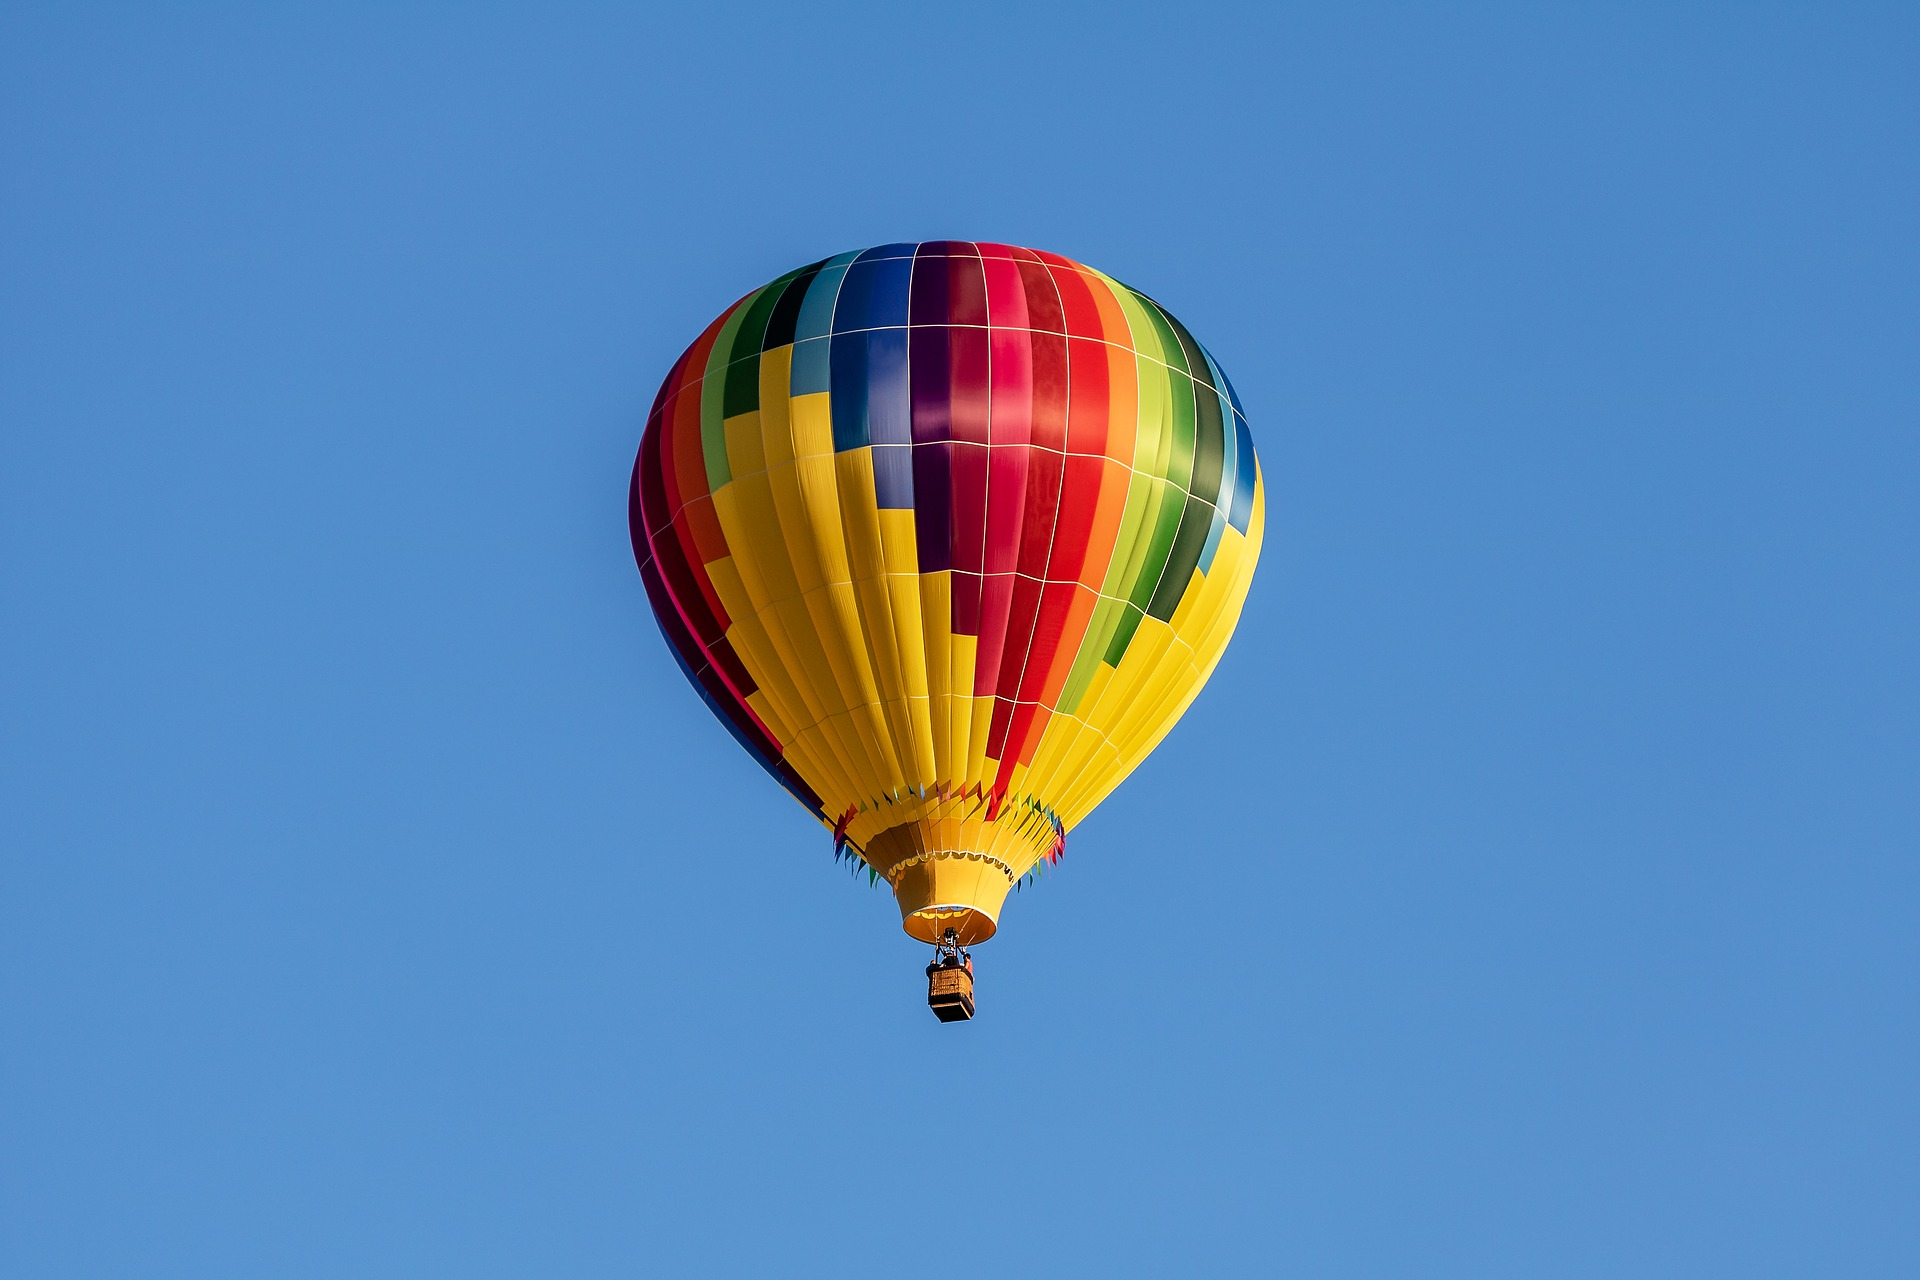 hot-air-balloon-3542903_1920